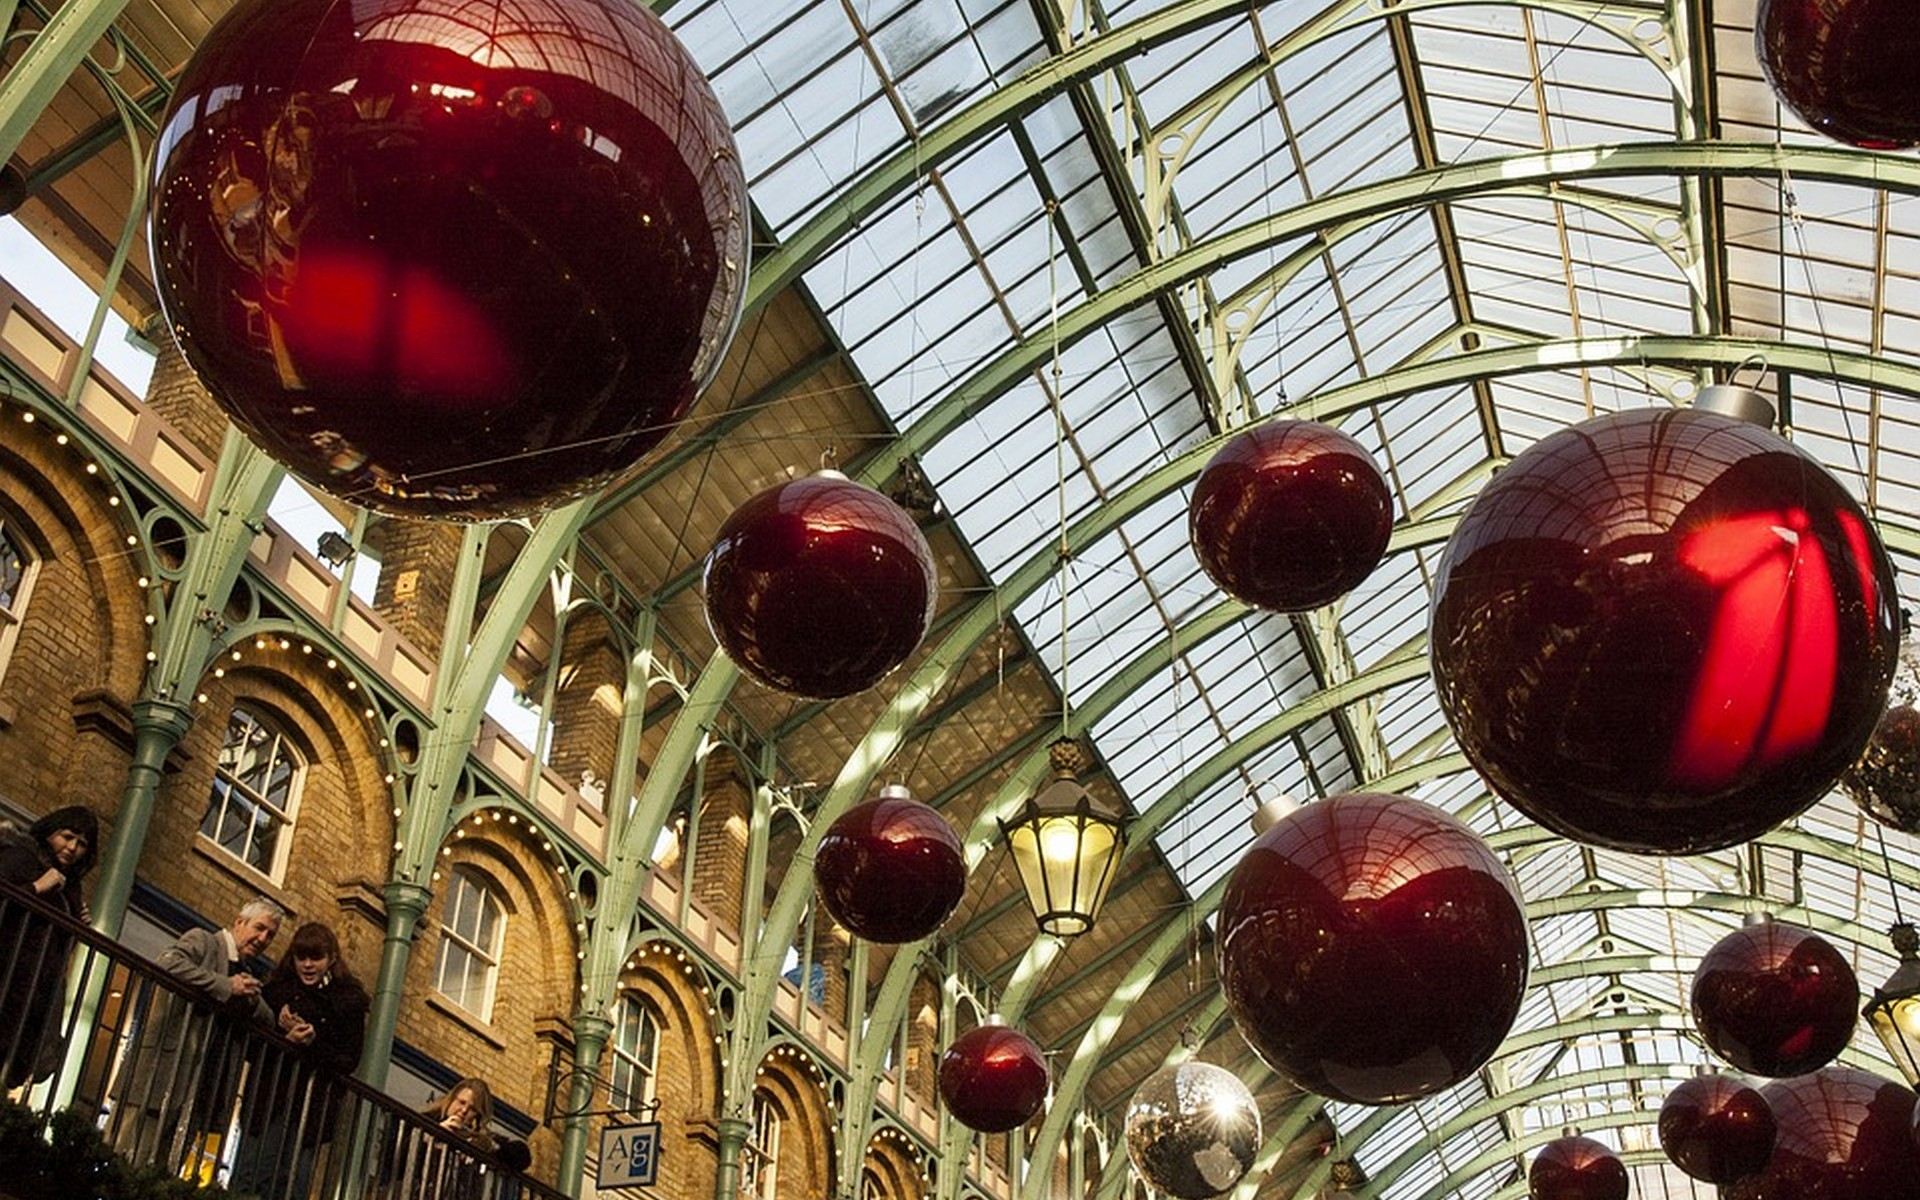 Opulent Christmas Decorations at Covent Garden, London